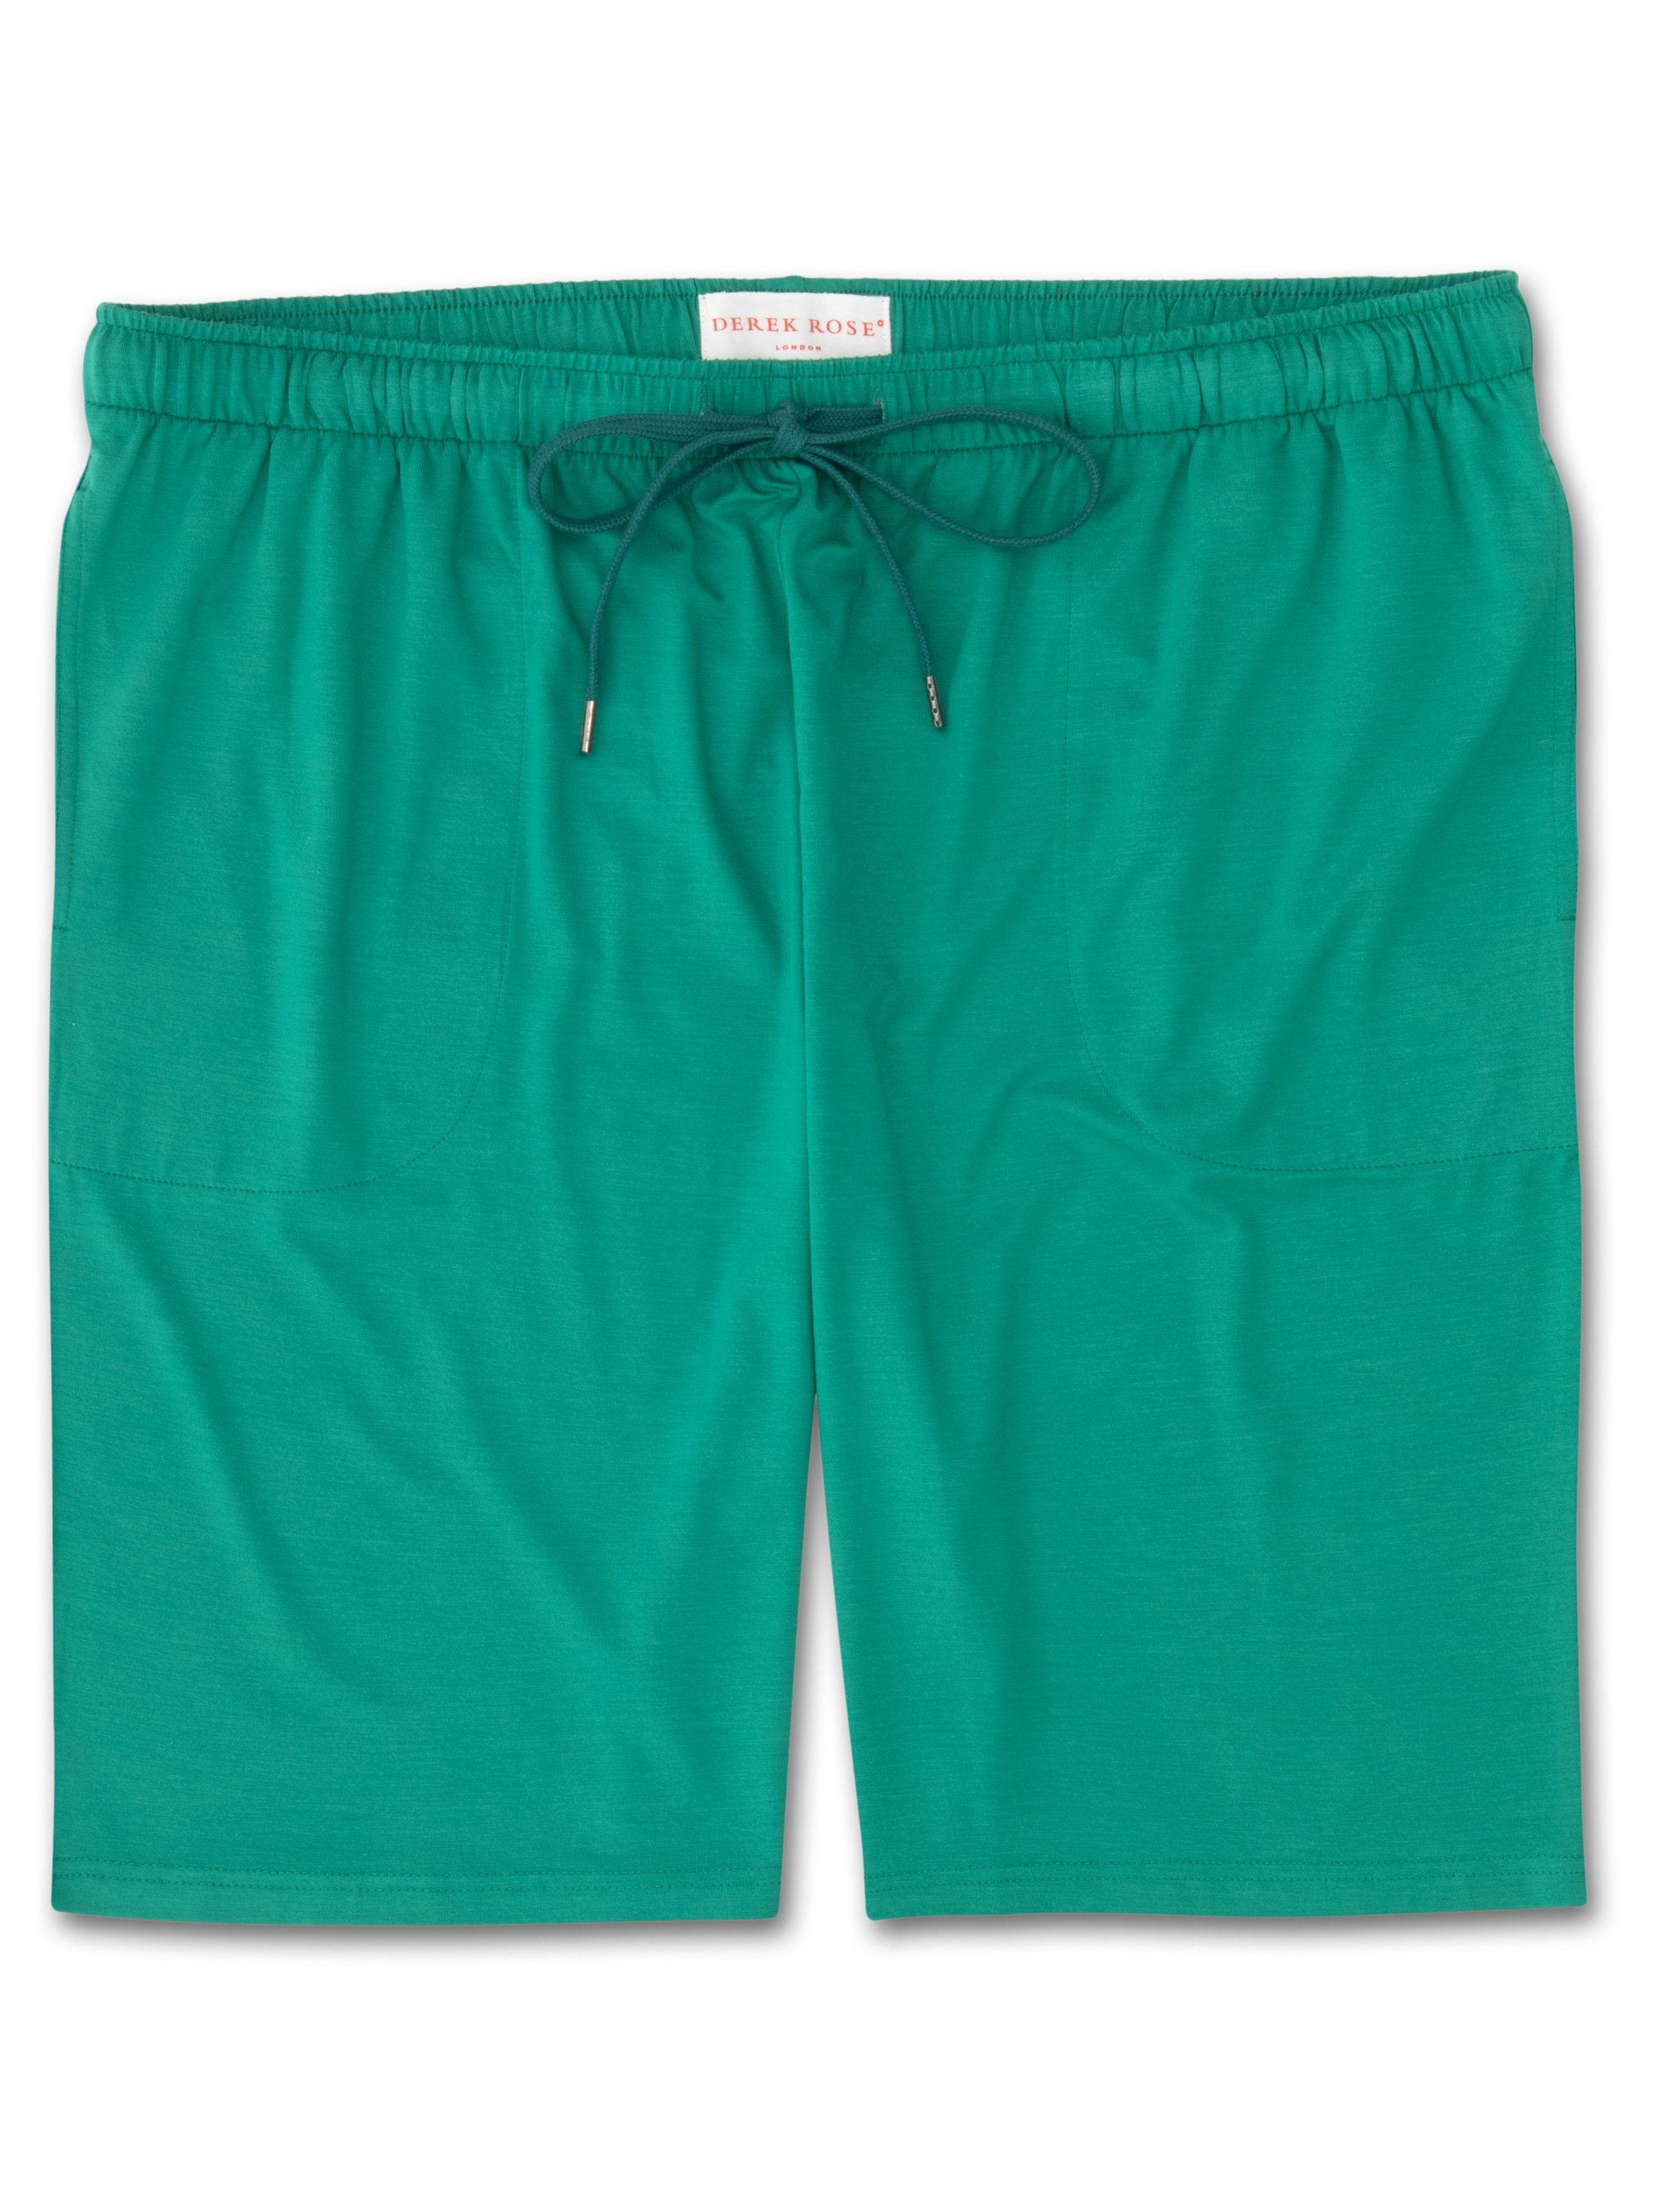 Men's Jersey Shorts Basel 6 Micro Modal Stretch Green